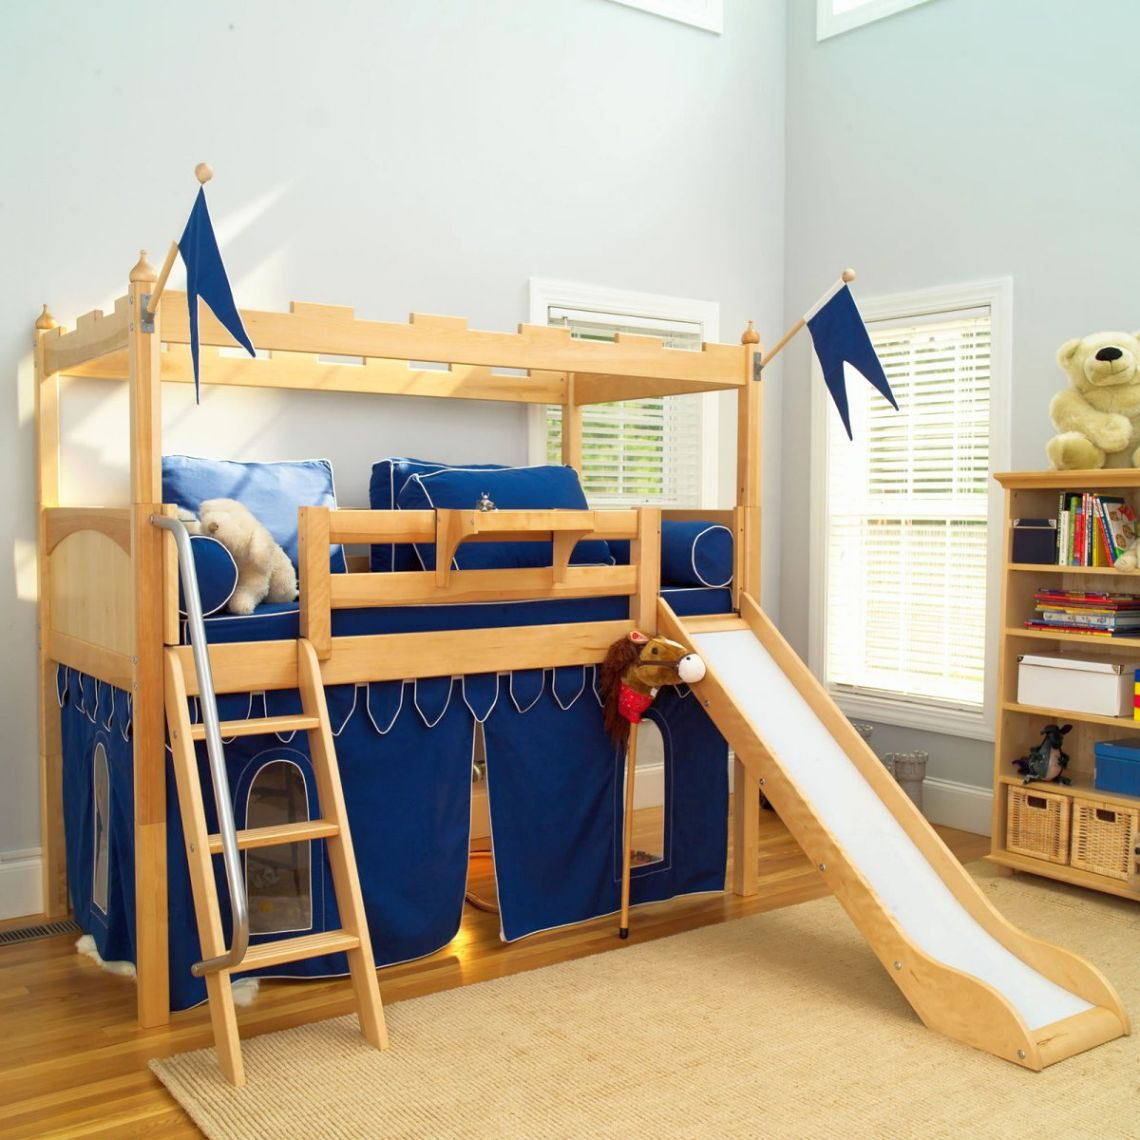 Playful Modern Kids Loft Beds With Wooden Bunk And Built In Slide On